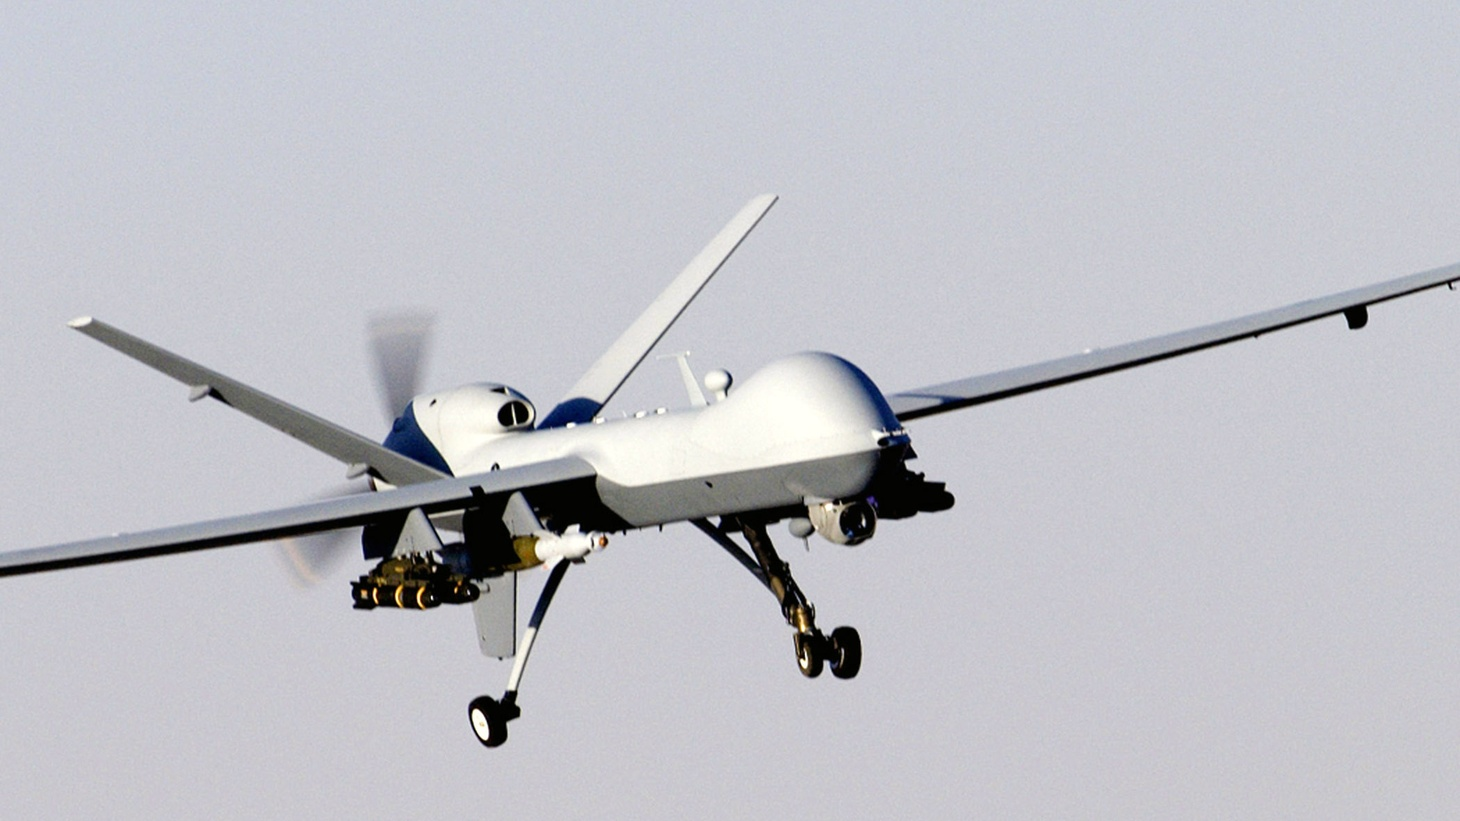 Drones are now very much a part of how we think about warfare. Between civilian casualties and the issue of waging war without ever sending an army into a country, there are many moral and ethical questions when it comes to drone warfare. We heard yesterday about the international rules or lack thereof when it comes to drones.